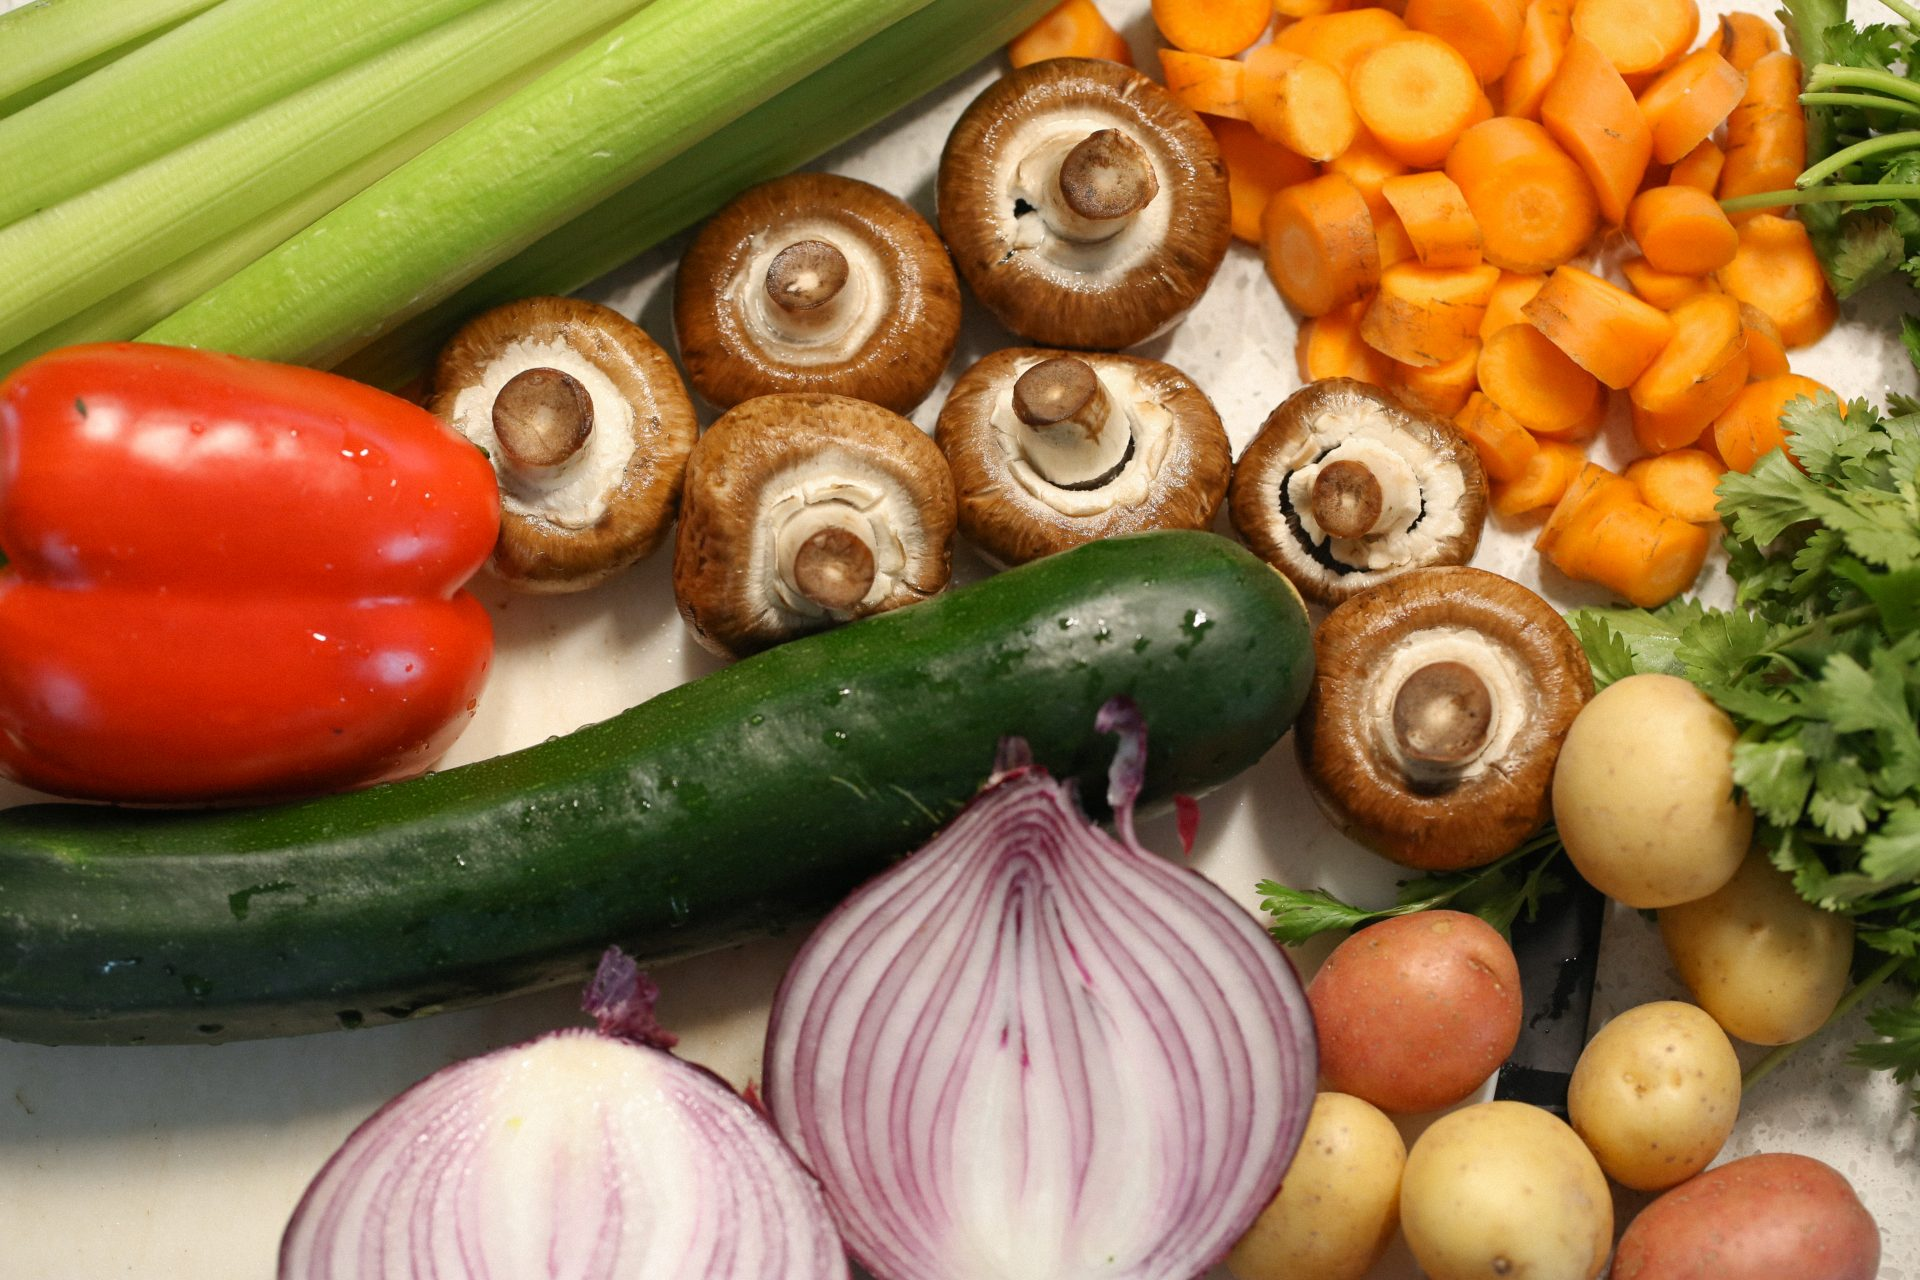 Flat Lay of vegetables, featuring red onion, potatoes, mushrooms, celery, carrots